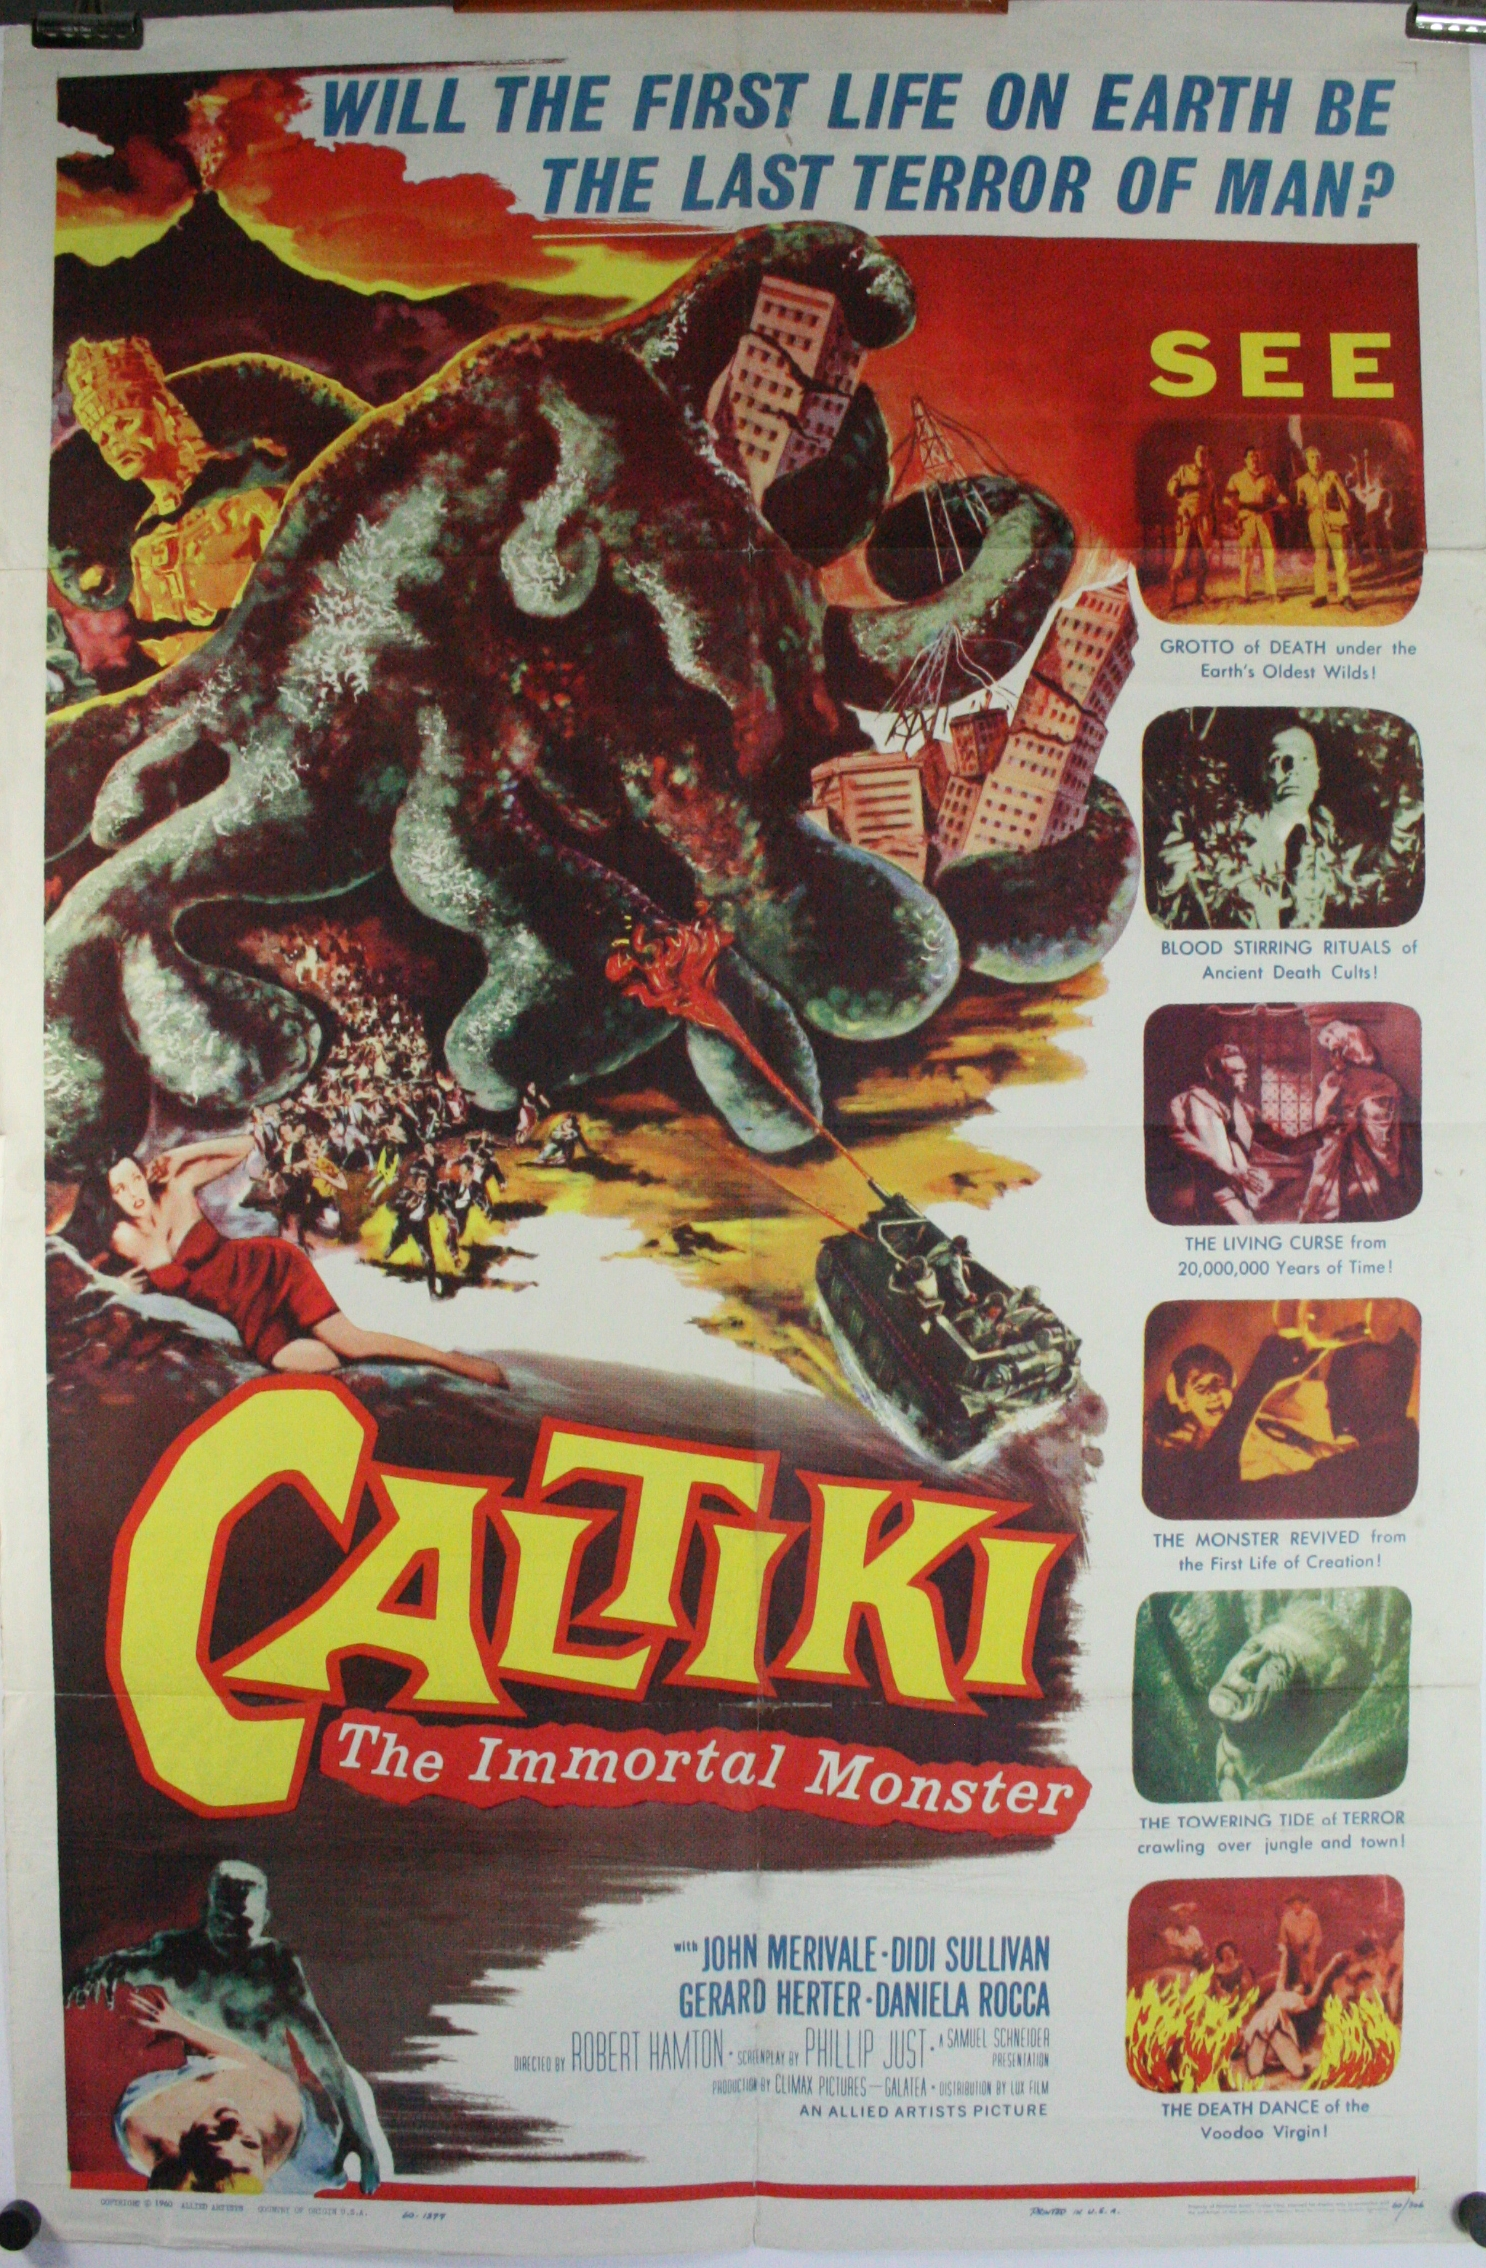 Caltiki the immortal monster-2219